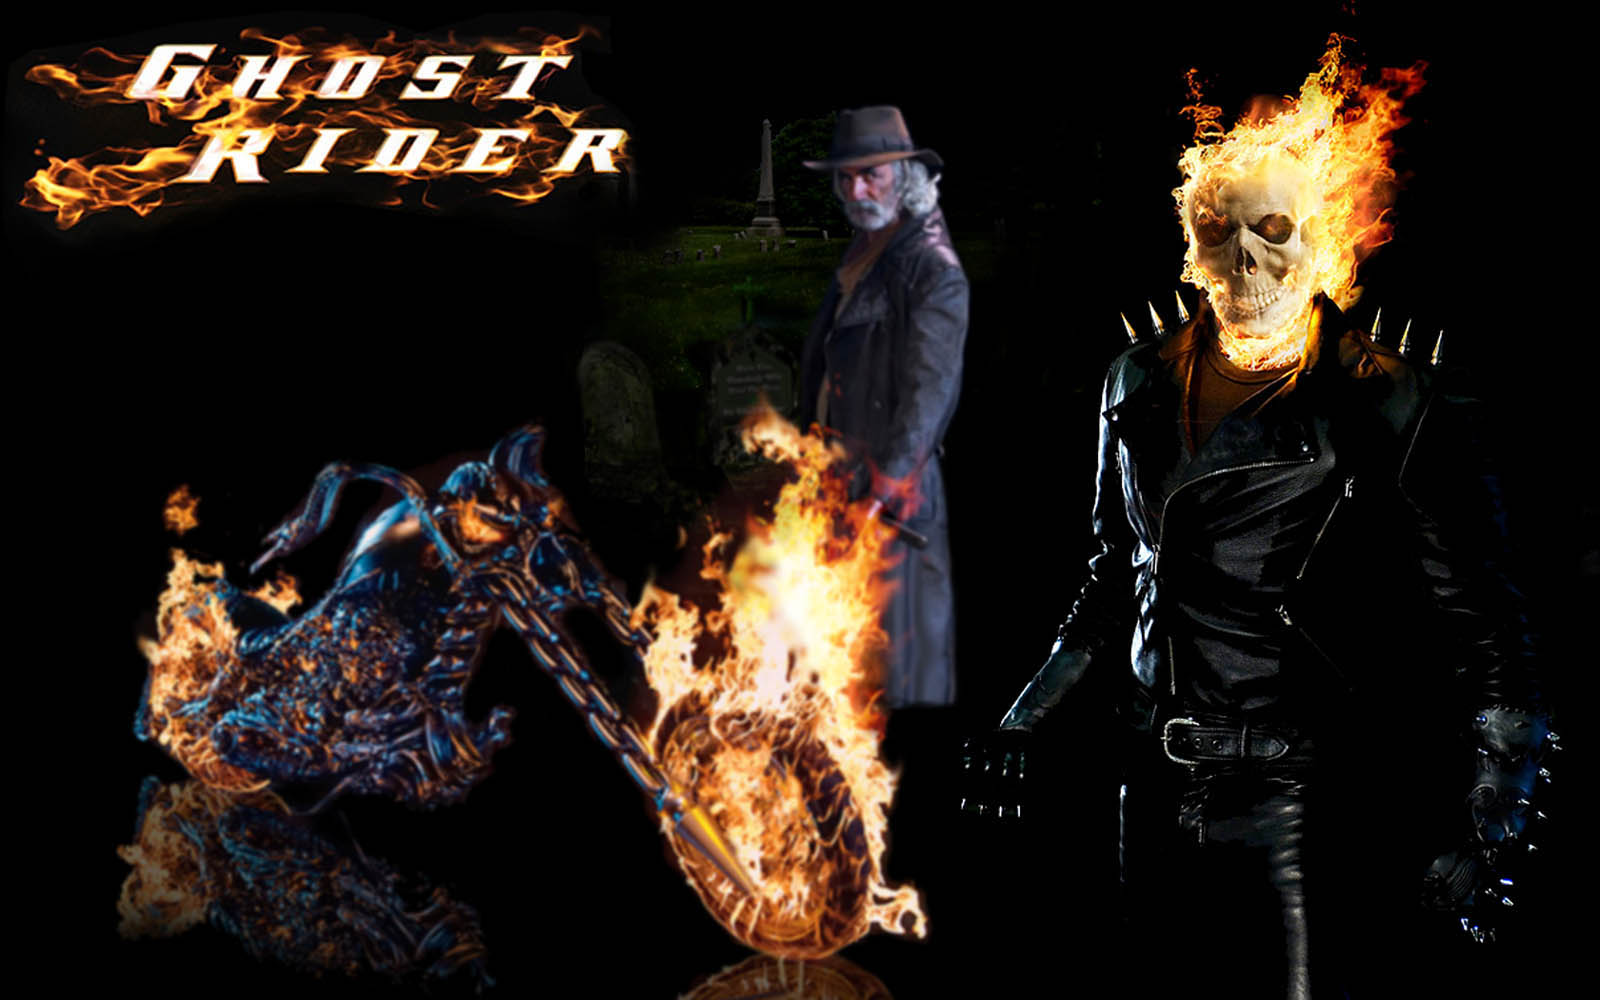 tag ghost rider wallpapers images photos pictures and backgrounds